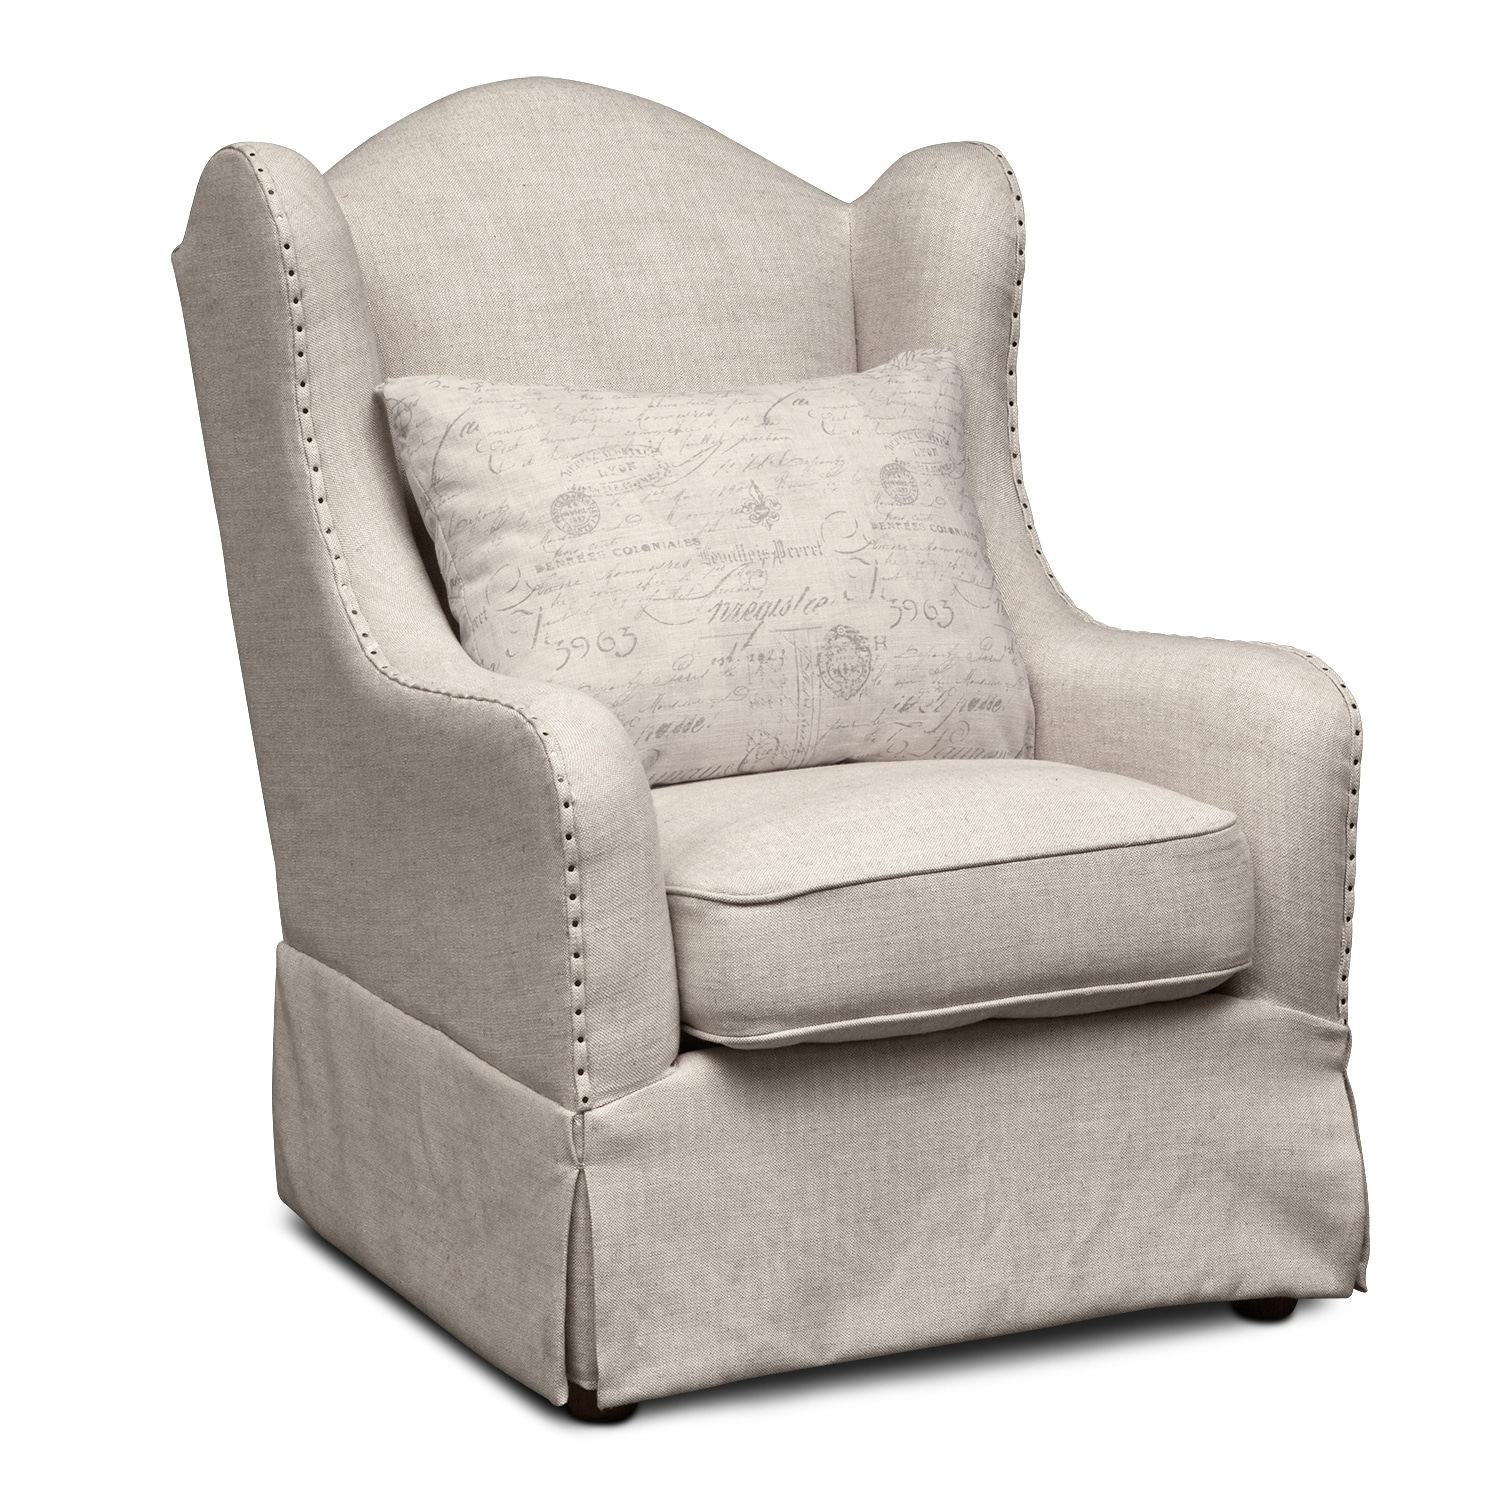 madeline accent chair  beige  value city furniture - madeline accent chair  beige by vie boutique living room furniture madeline accent chair  beige